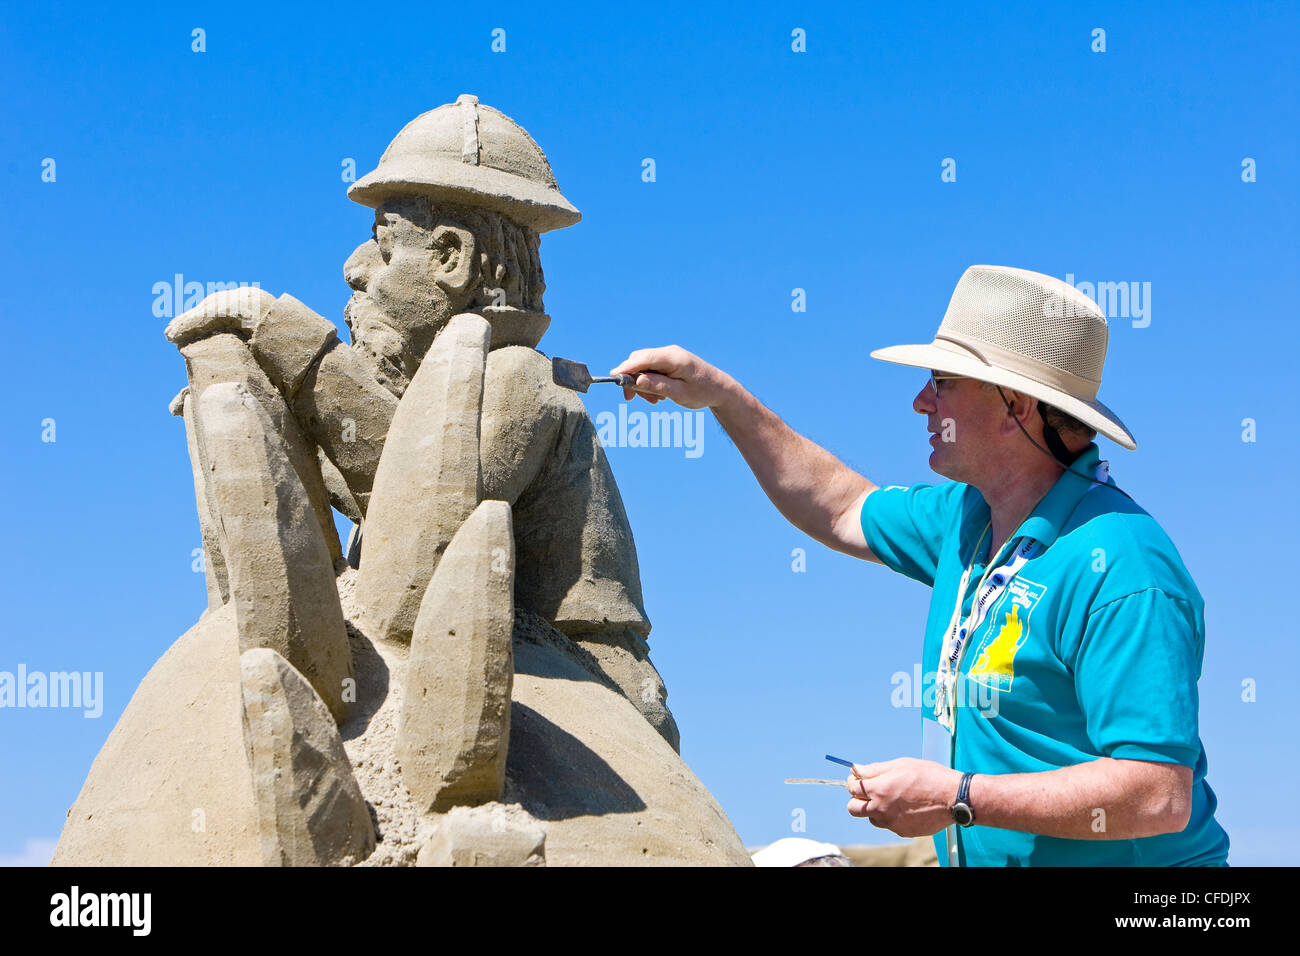 sand castle competitor applies finishing touches - Stock Image